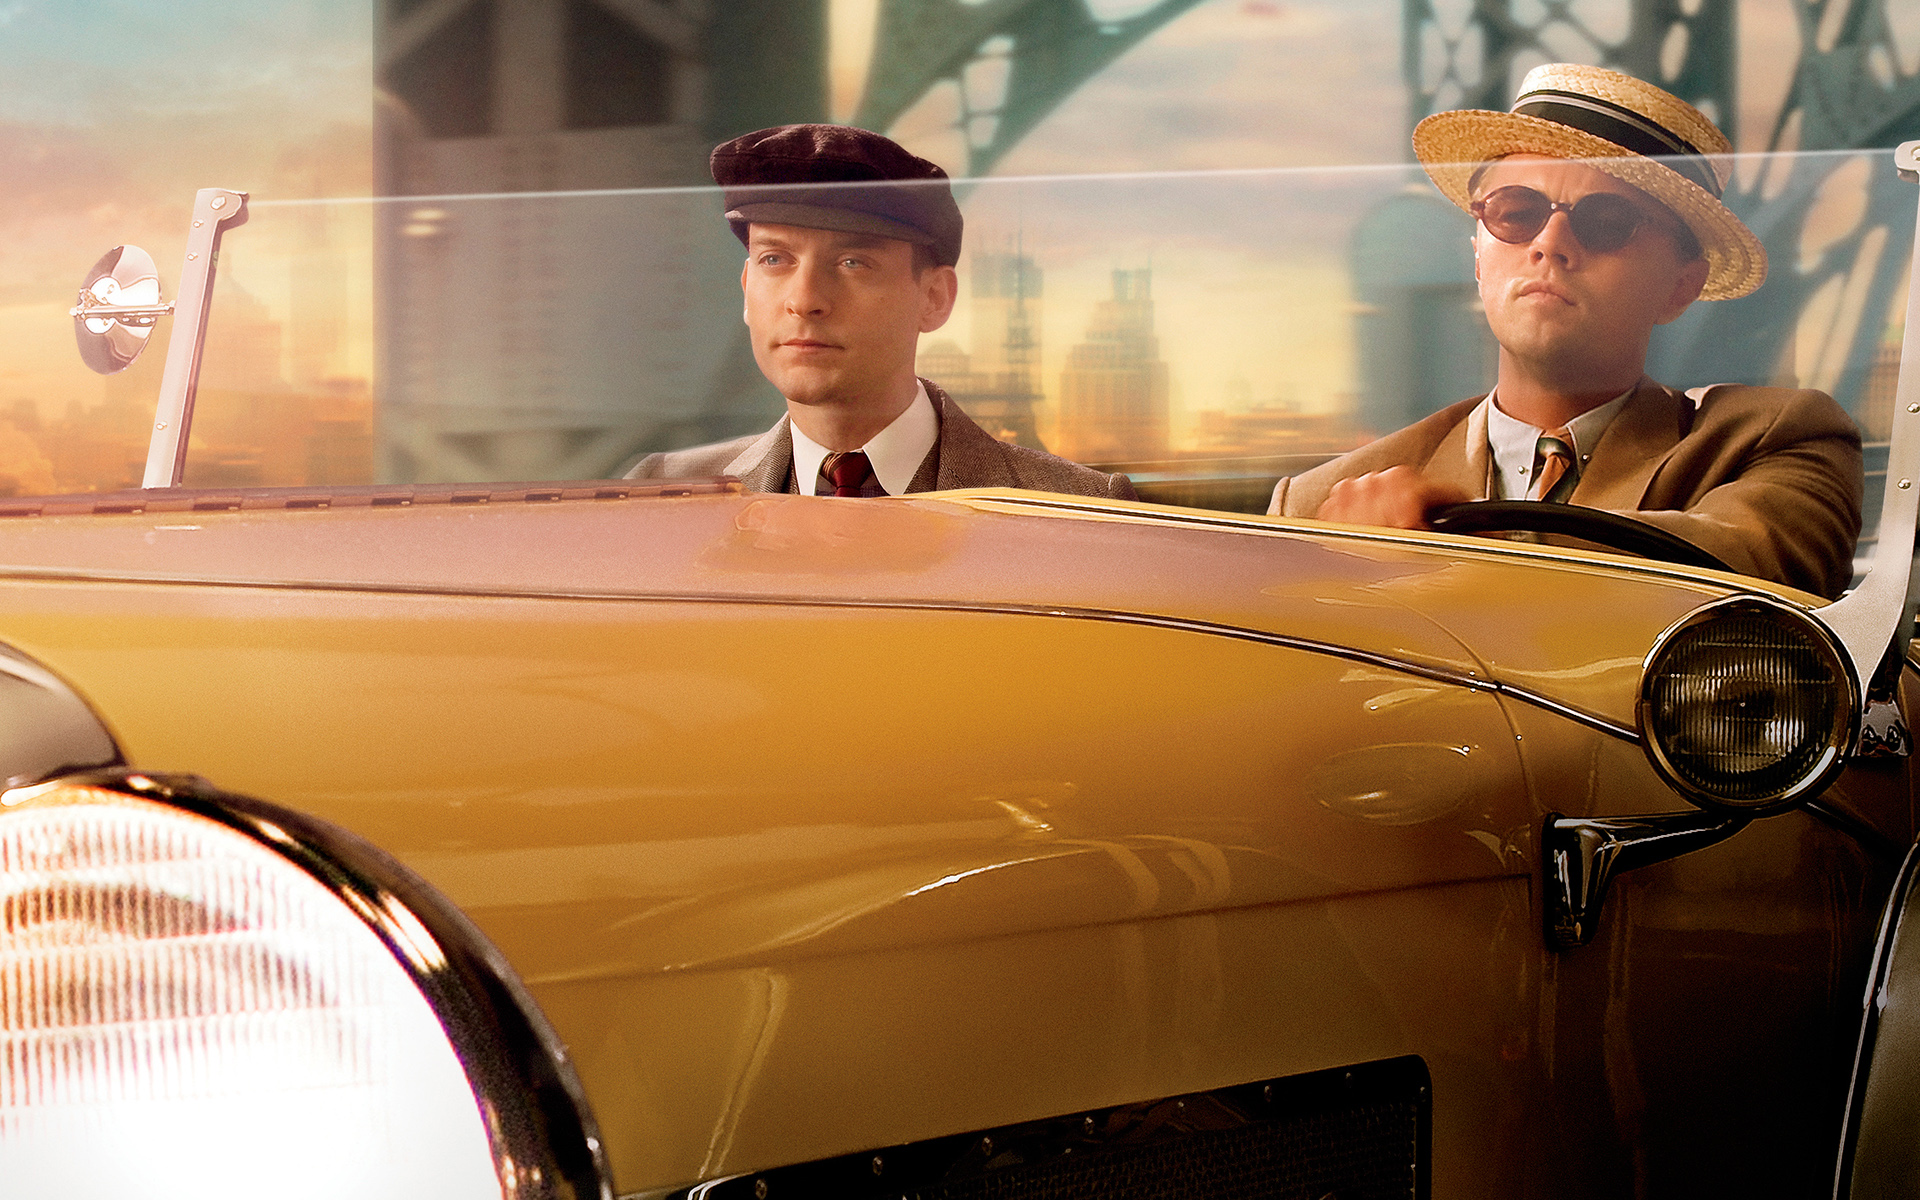 tobey_maguire_in_the_great_gatsby-wide-wallpaper